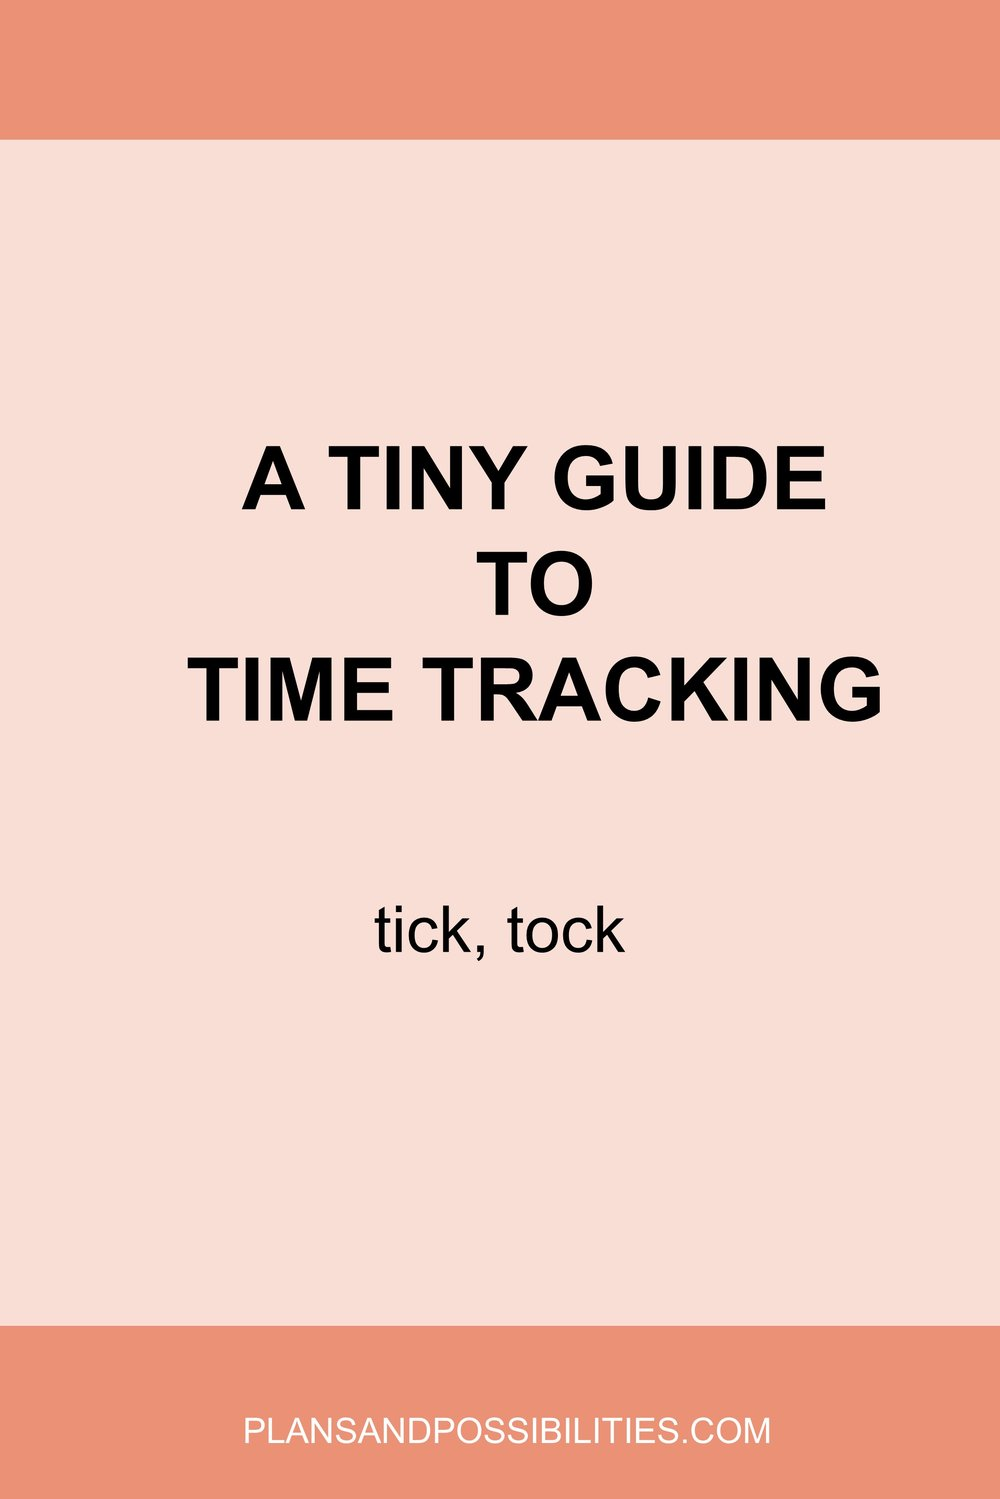 A Tiny Guide To Time Tracking.jpg